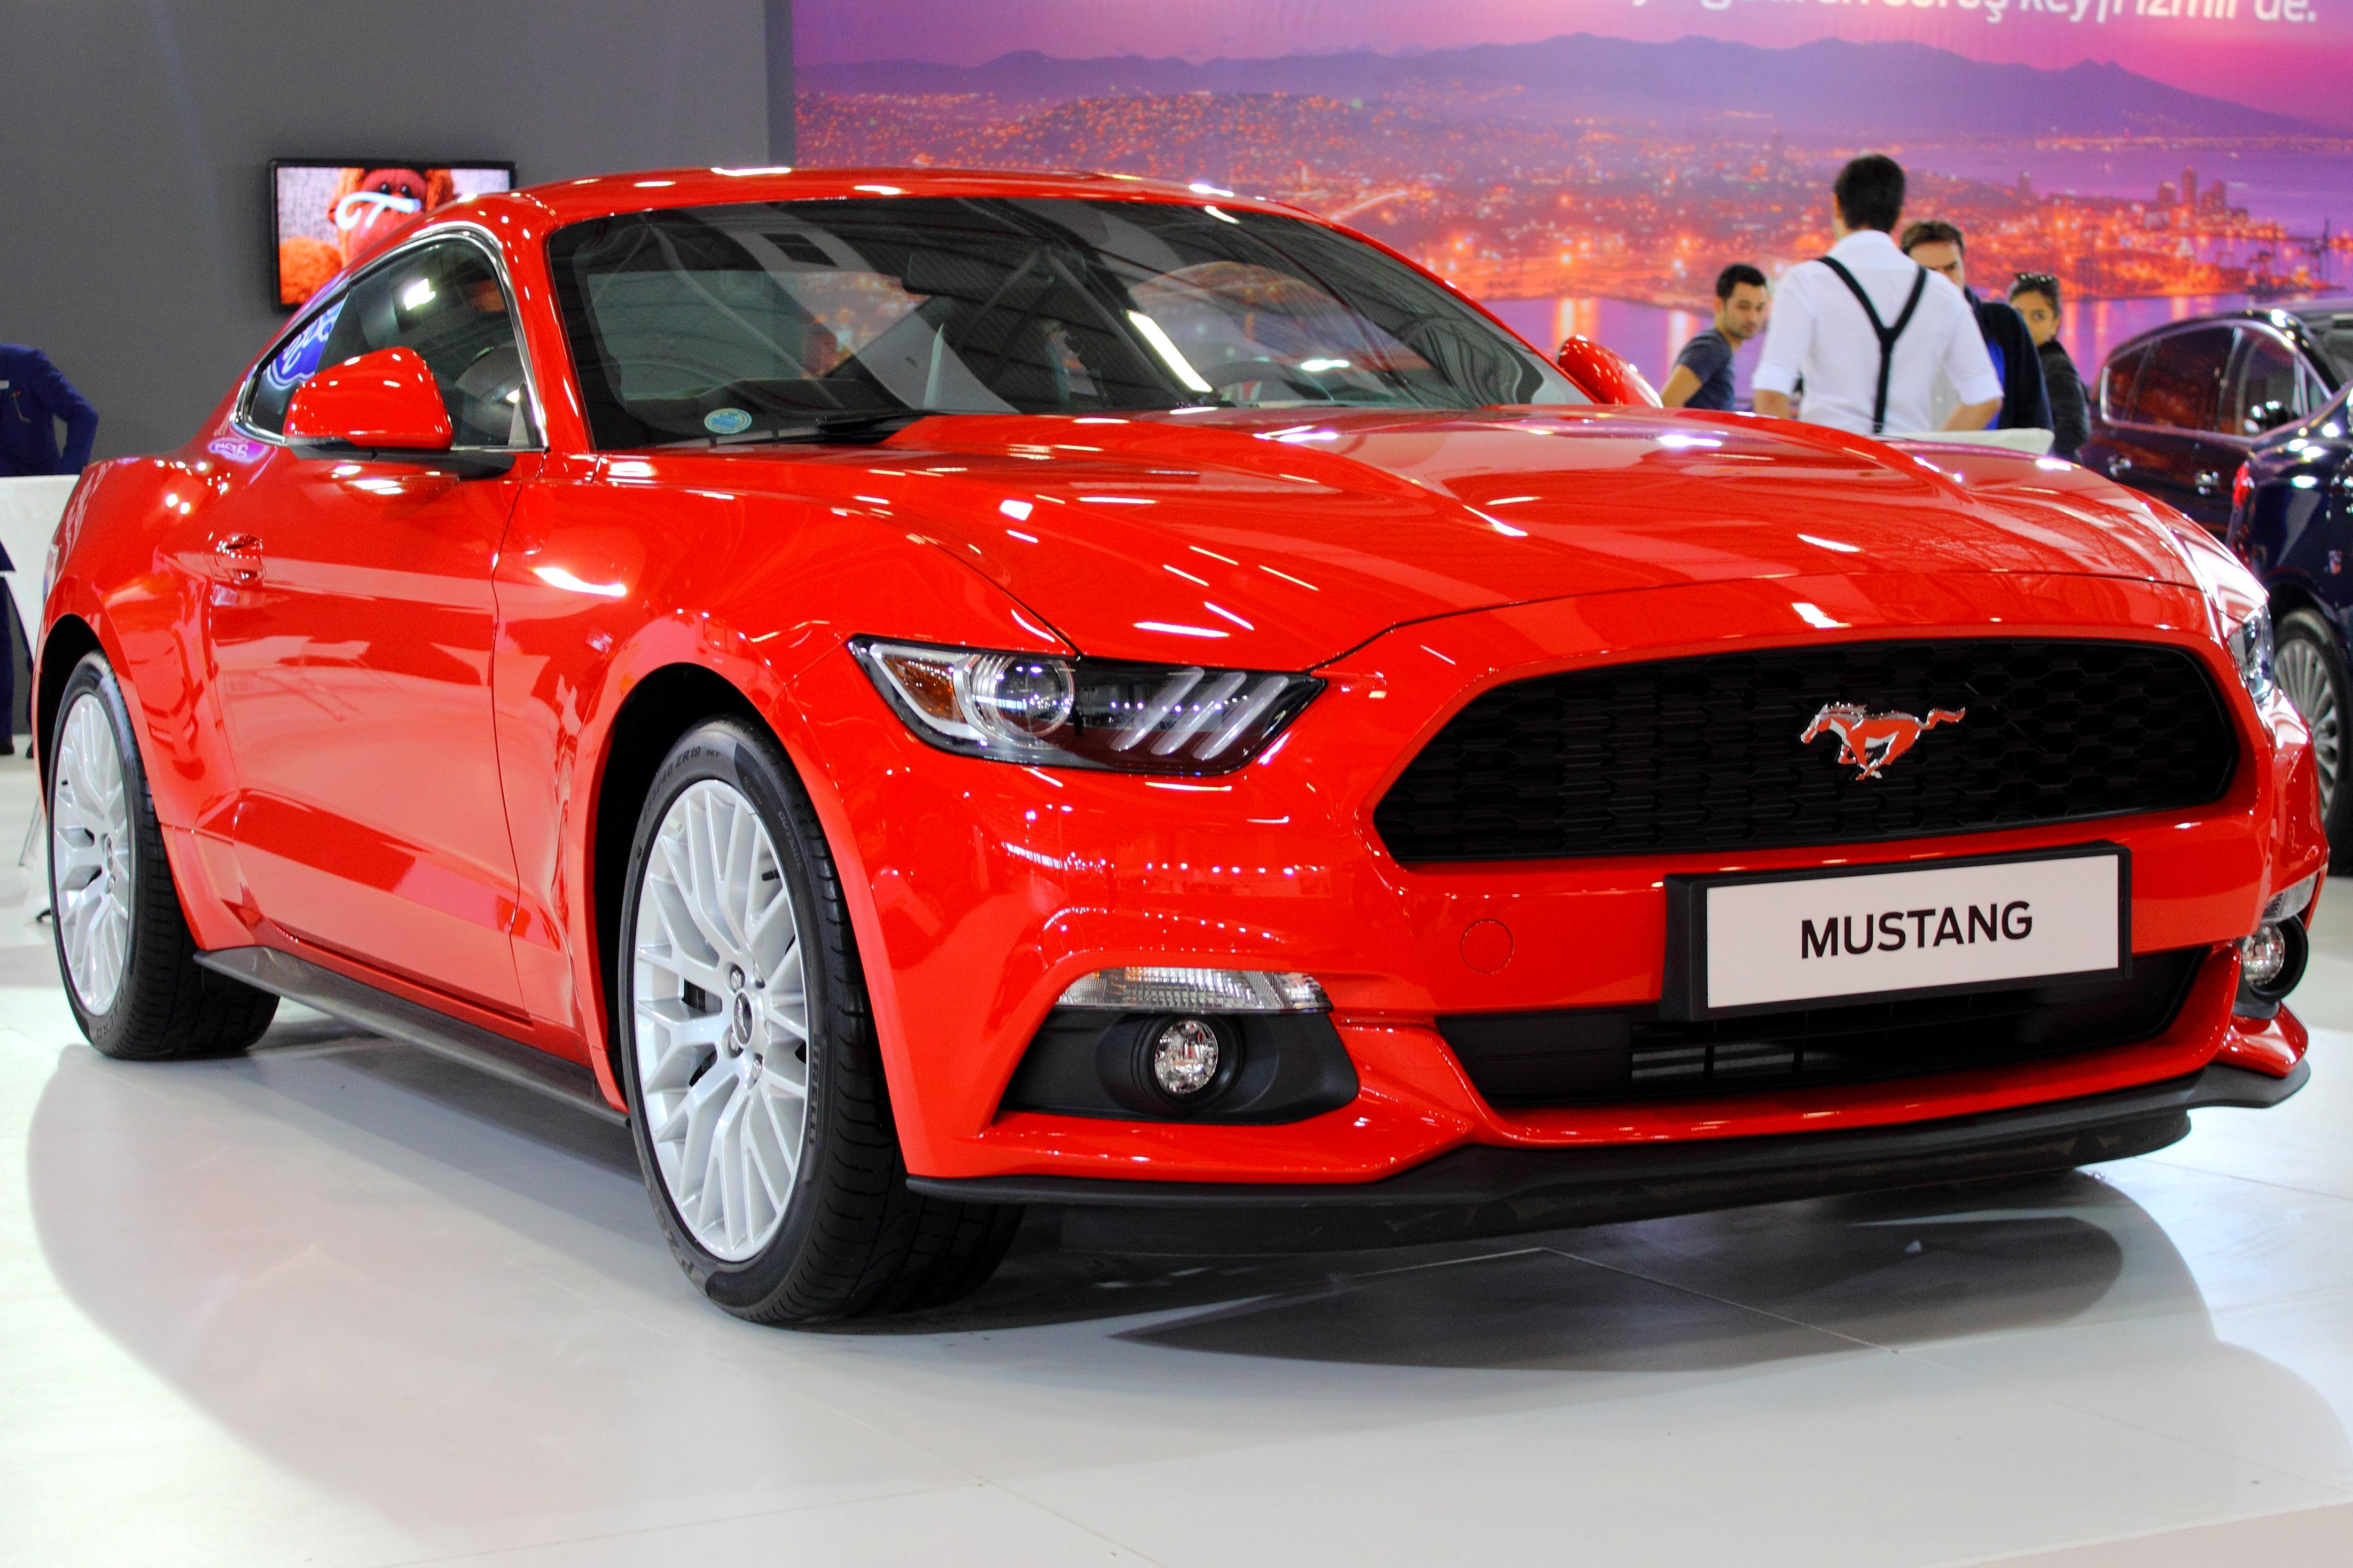 Free stock photo of IZMIR AUTO SHOW '16  //  FORD MUSTANG